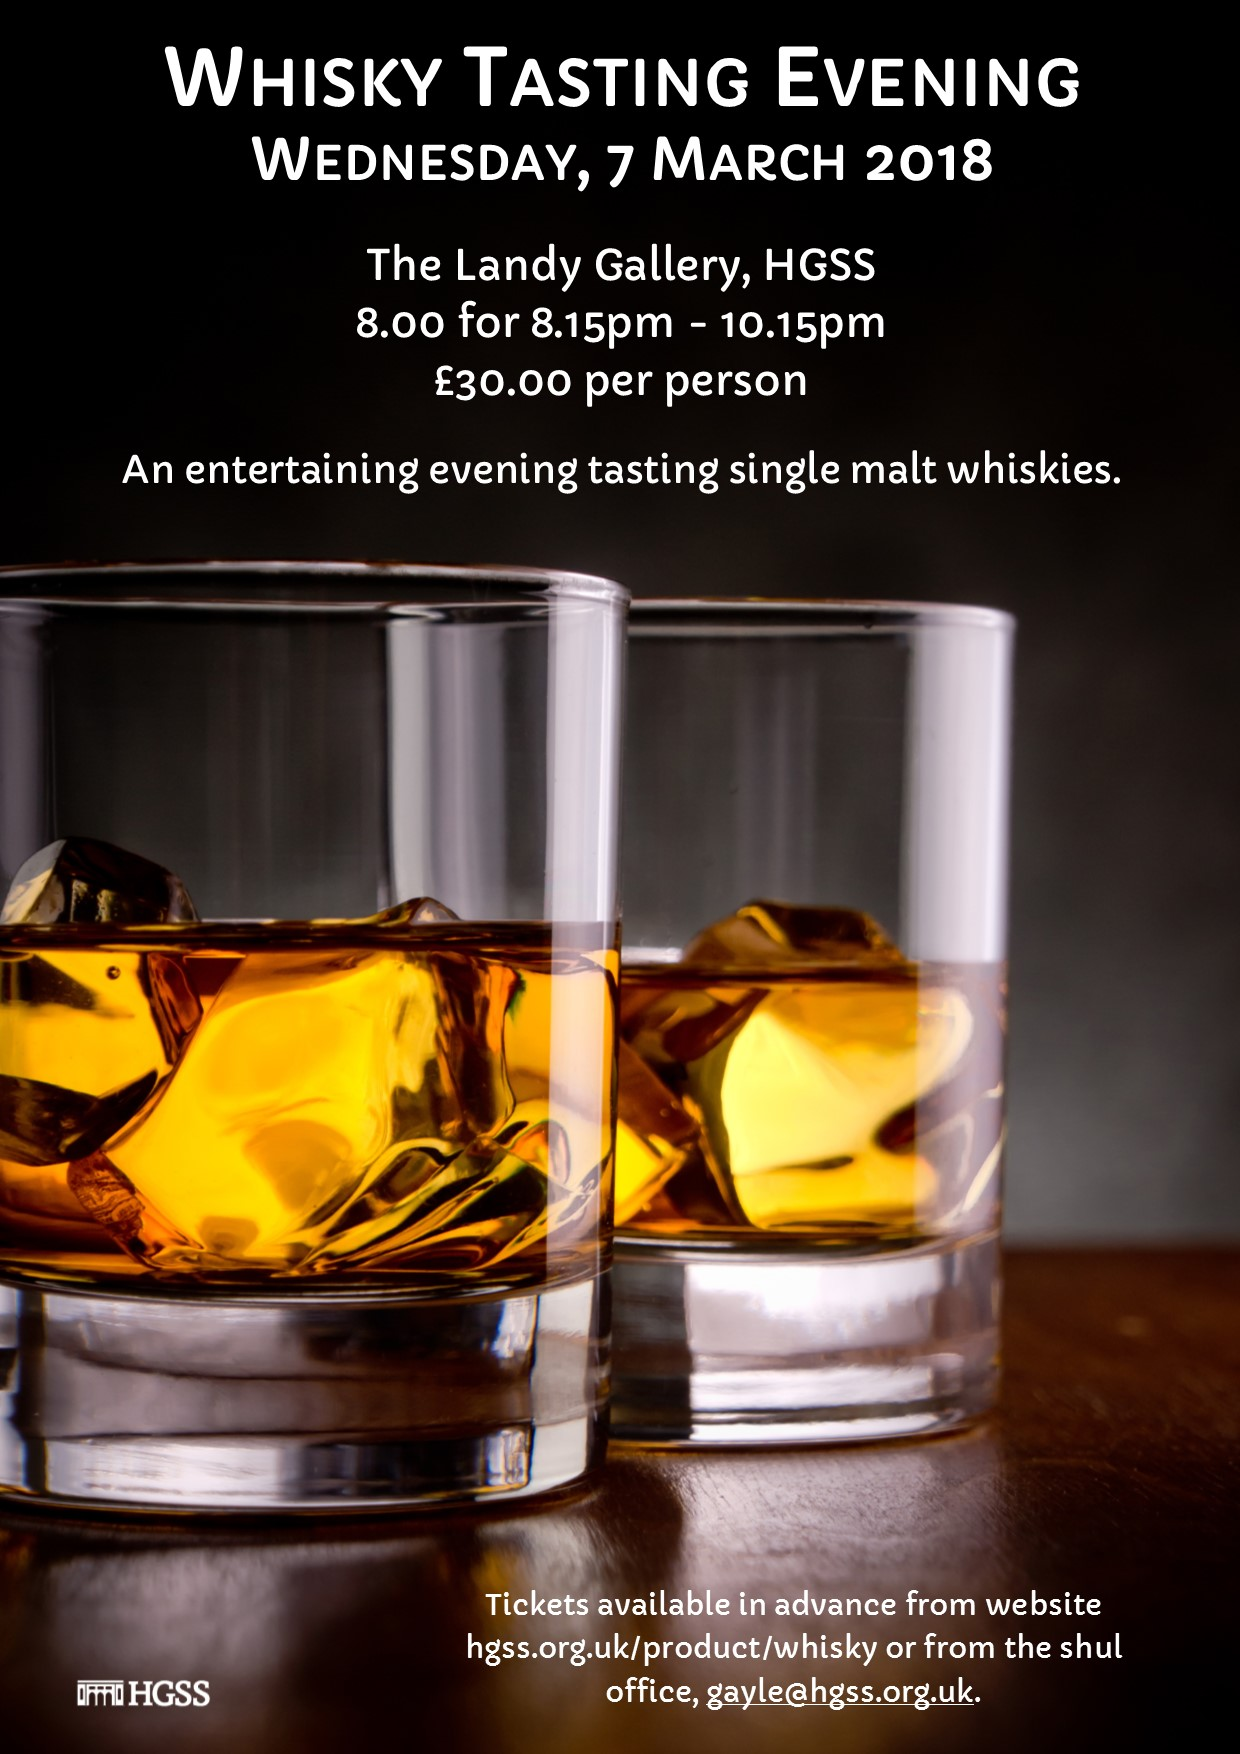 HGSS Whisky Tasting Evening @ The Landy Gallery